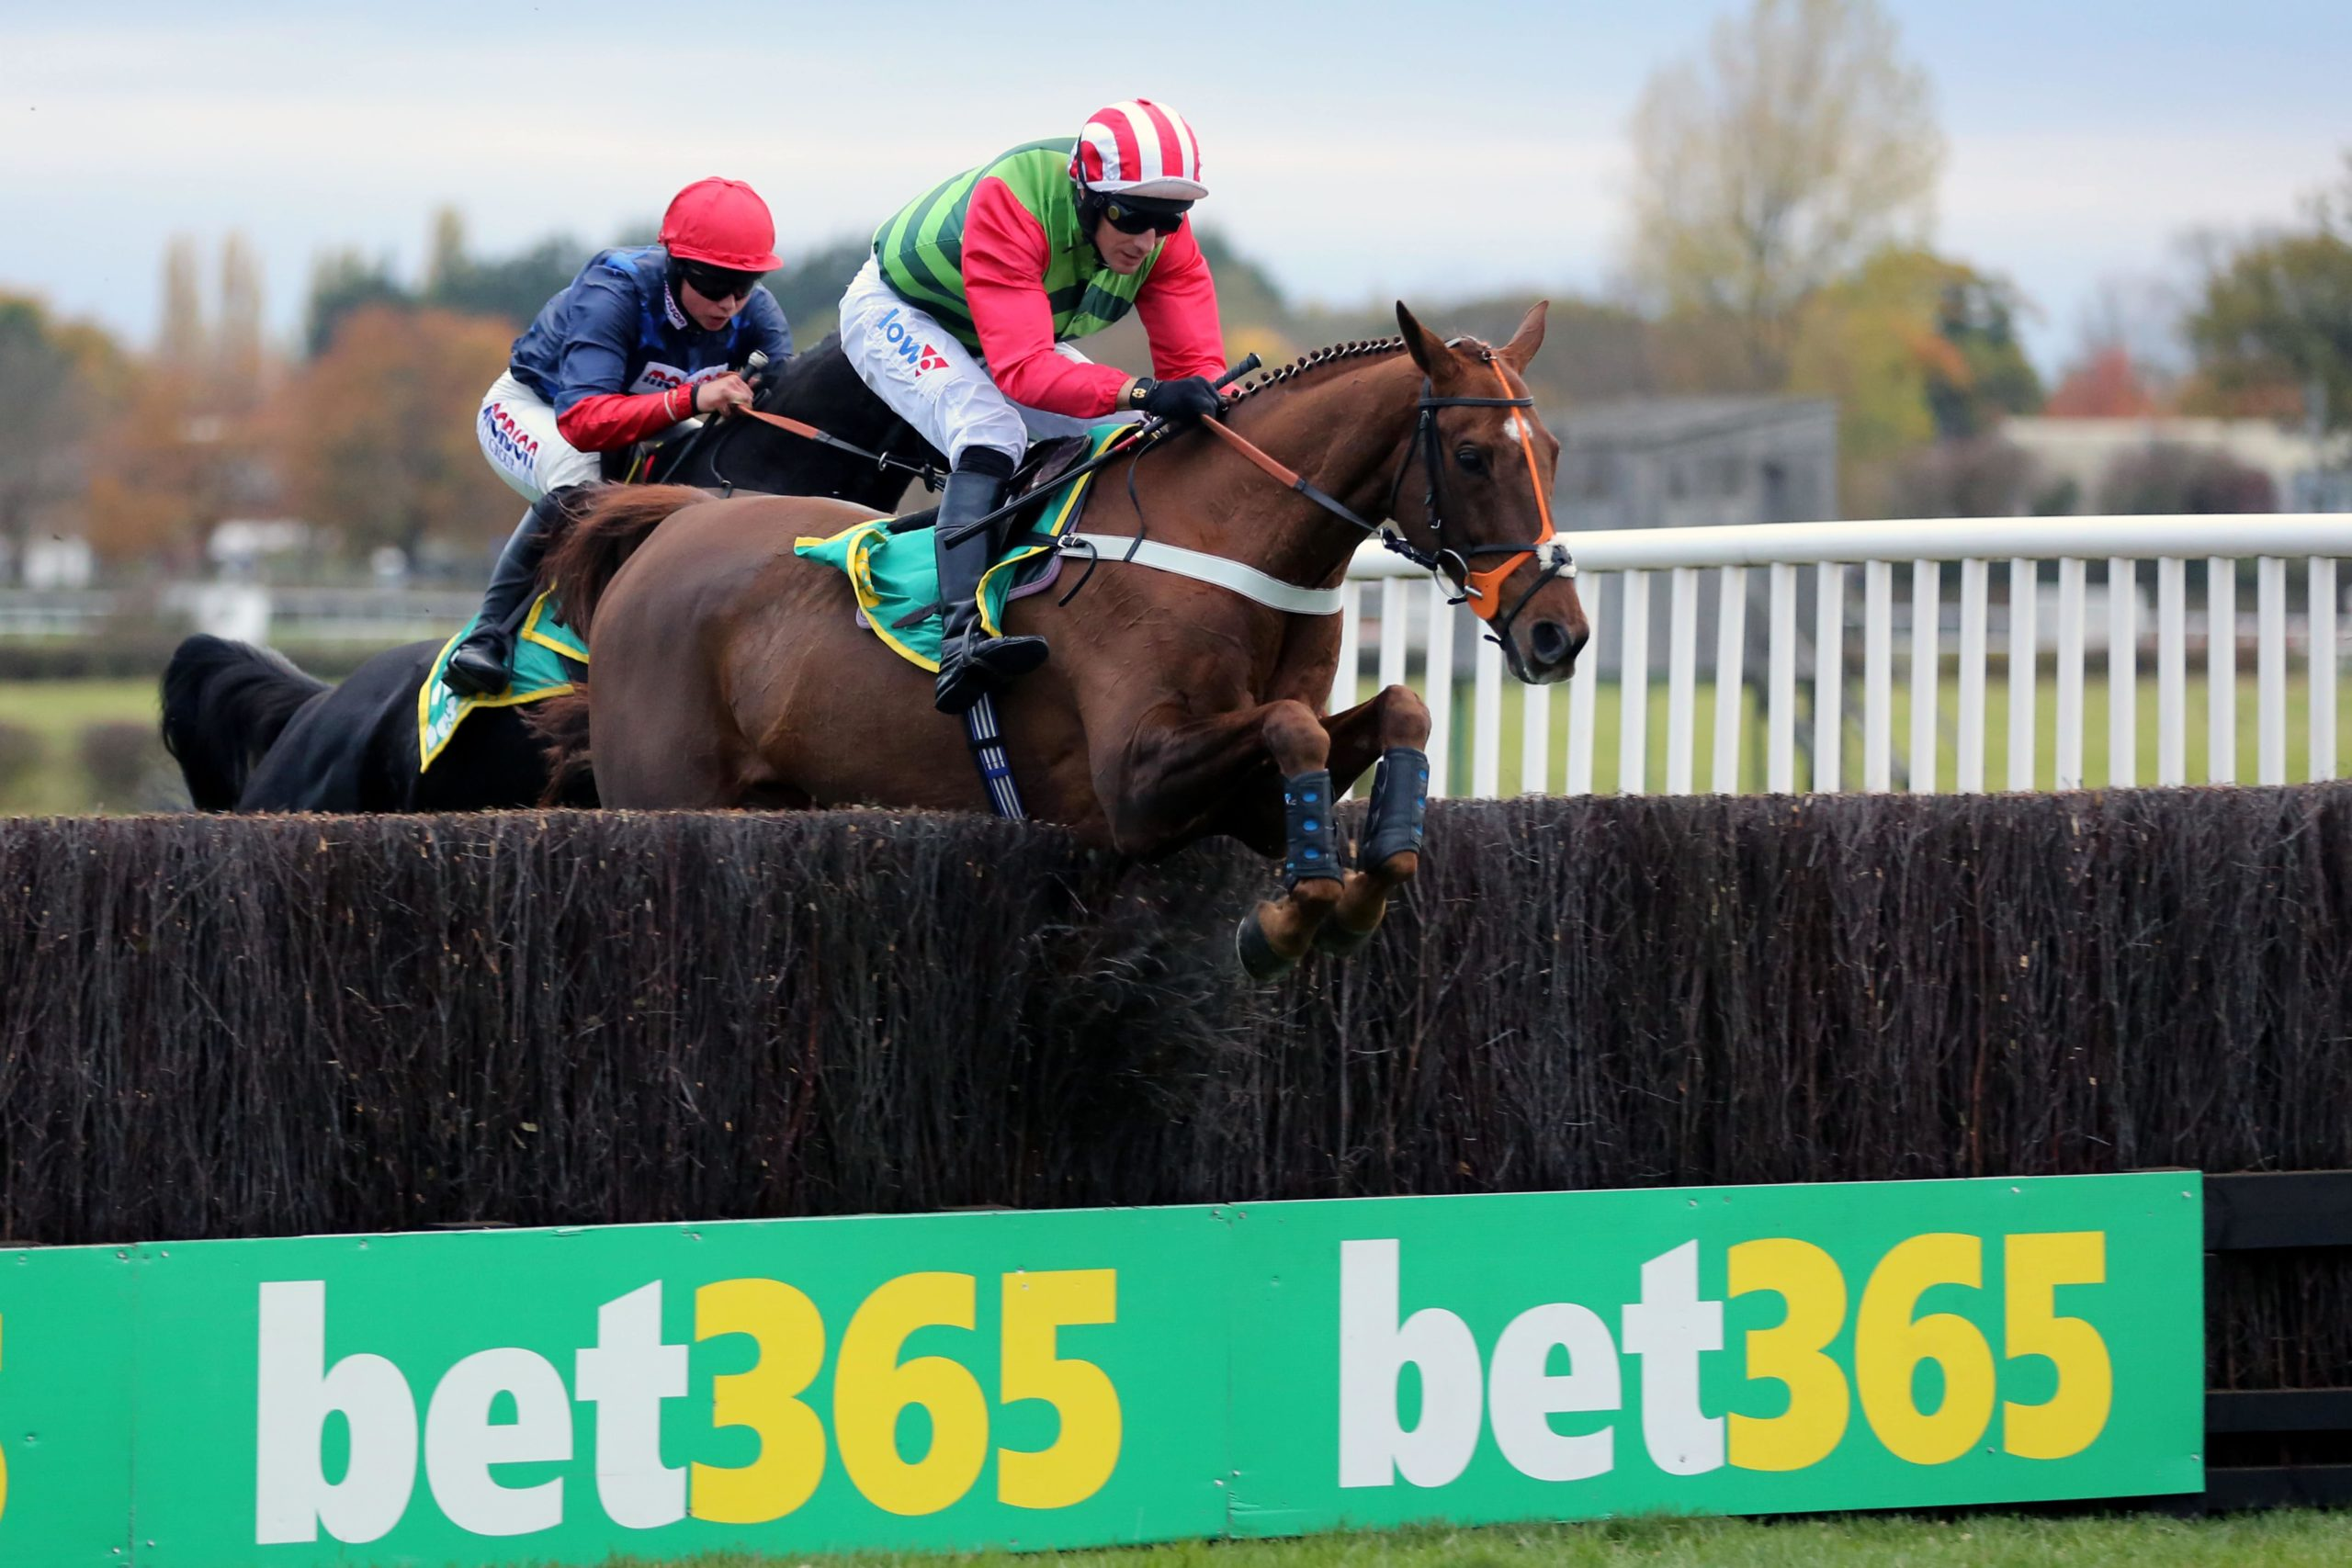 Wetherby Mares' Hurdle 2021